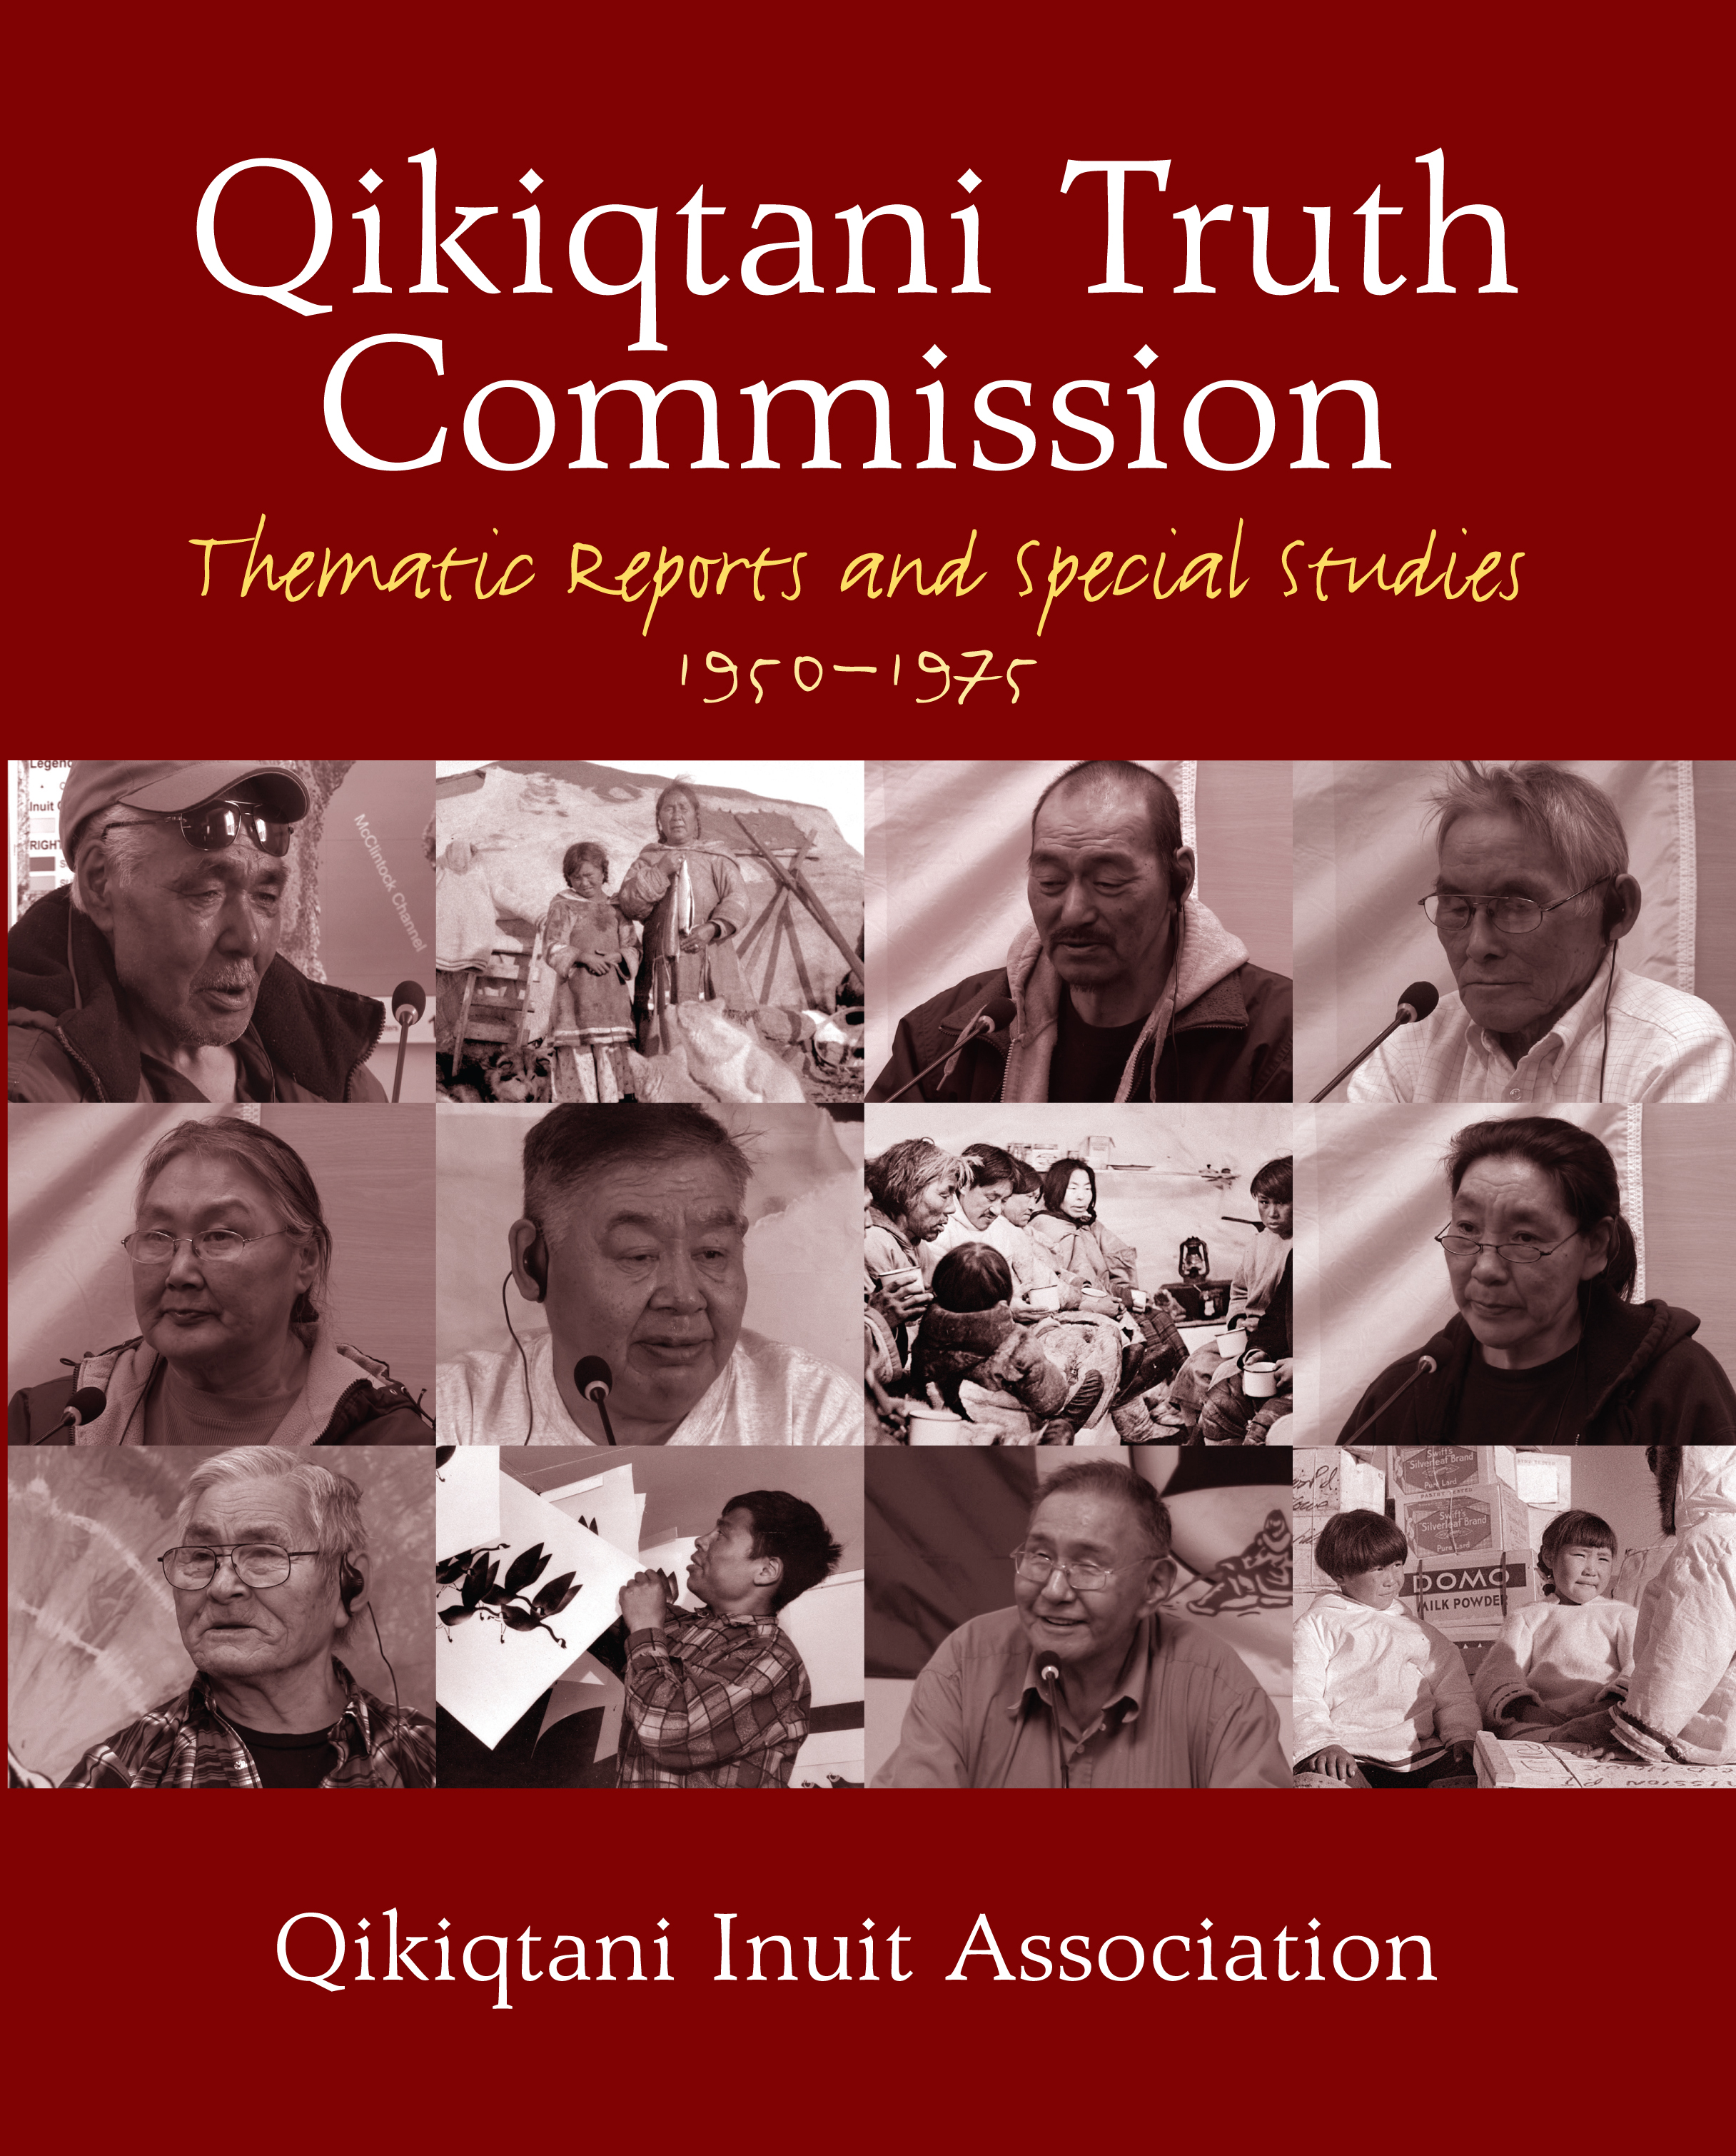 Qikiqtani Truth Commission